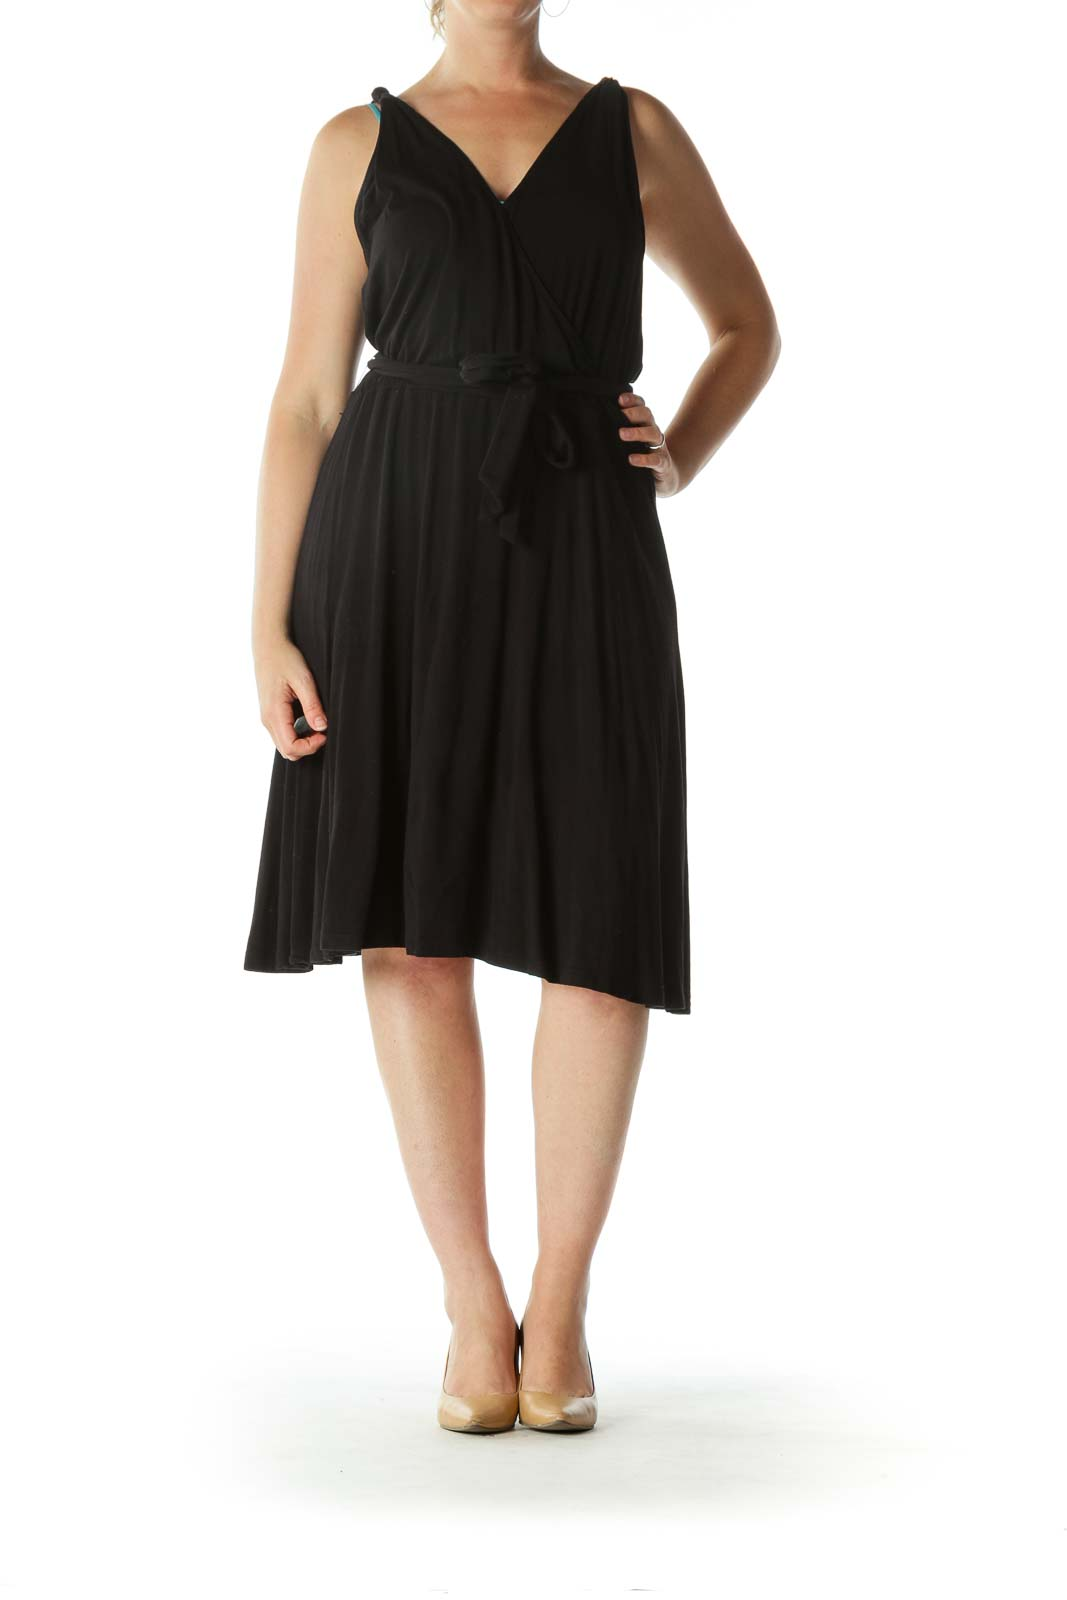 Black Surplice Neckline Belted Flared Day Dress